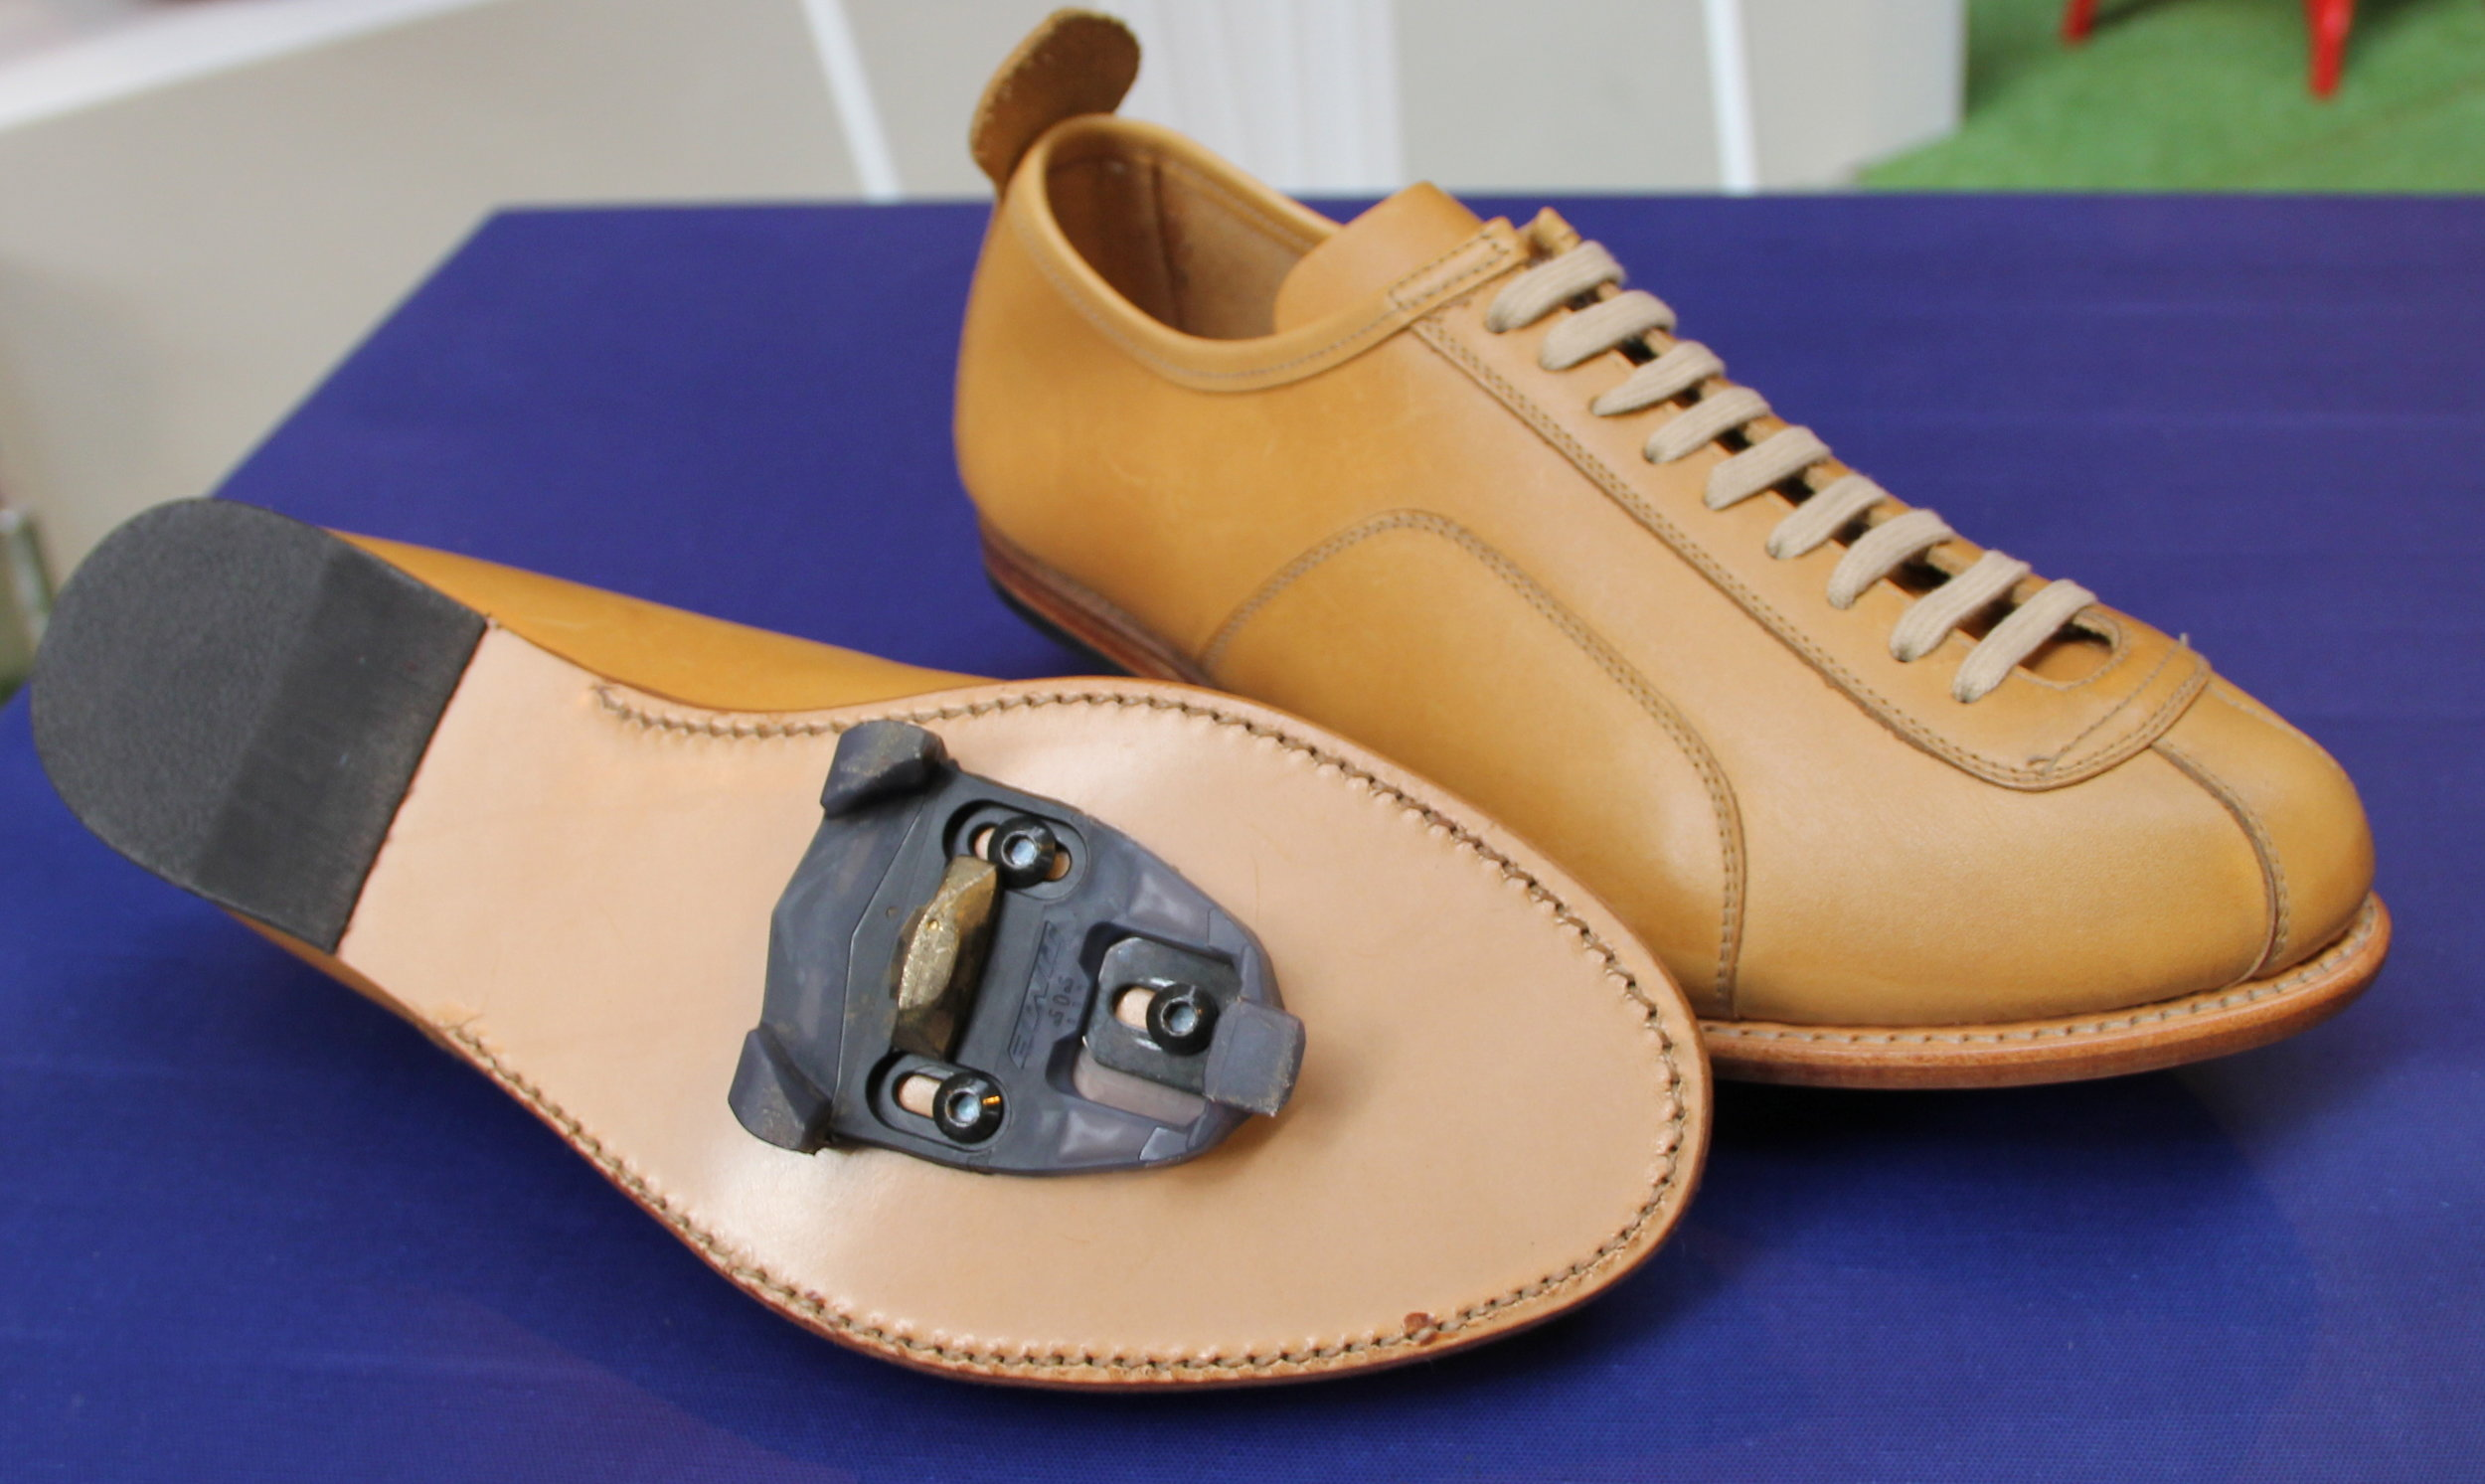 The first ever Goodyear Welted bench-made road shoe with cleats